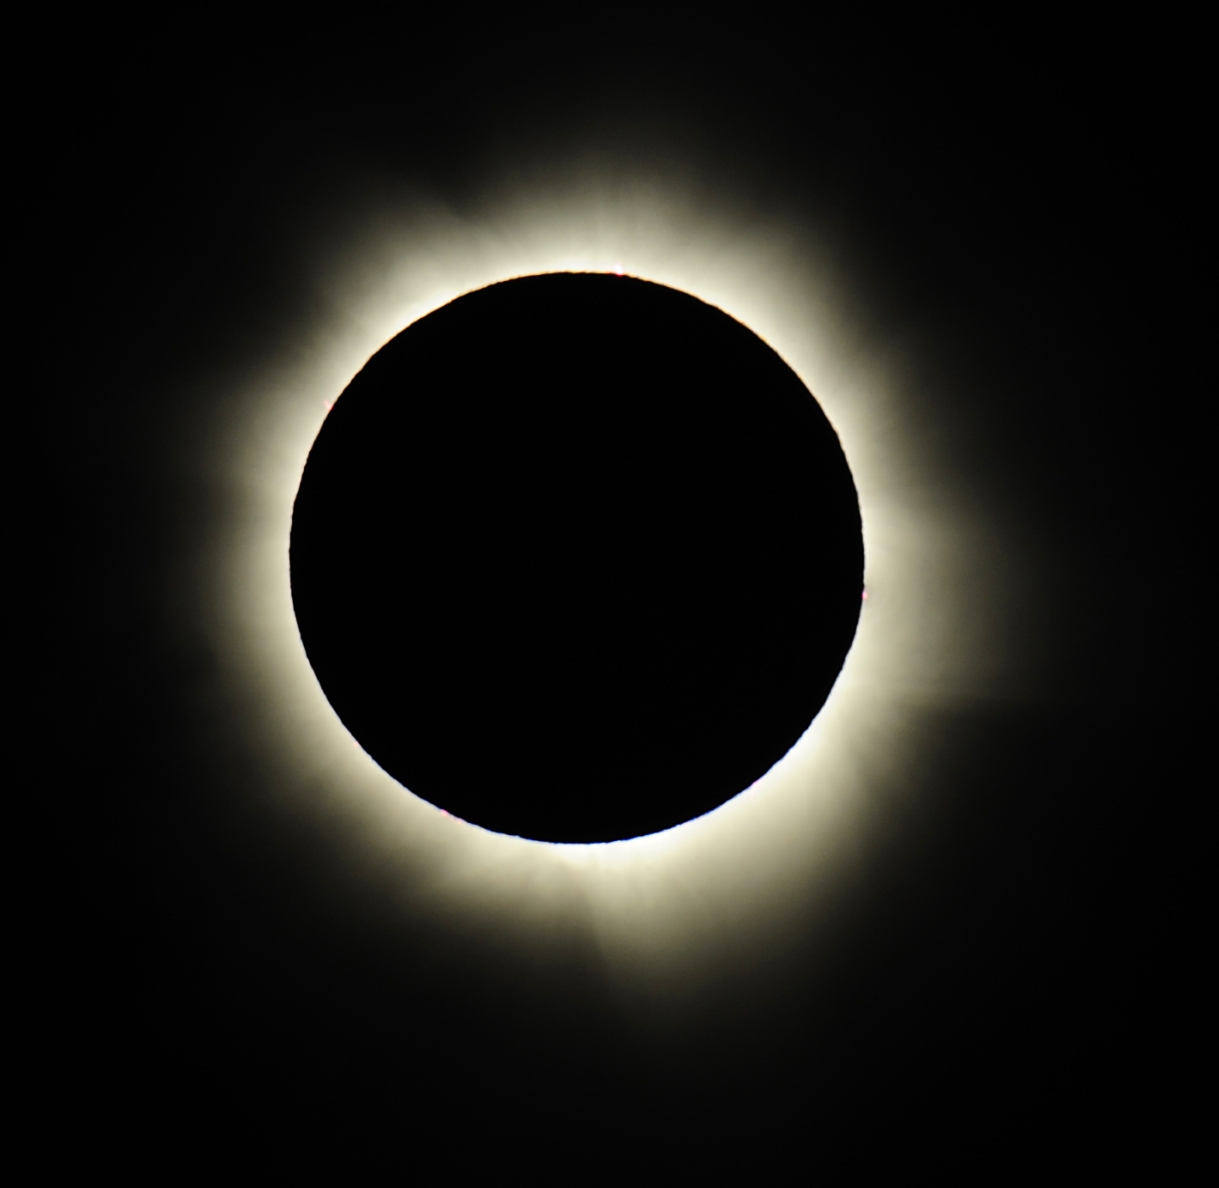 Images of the Solar Eclipse